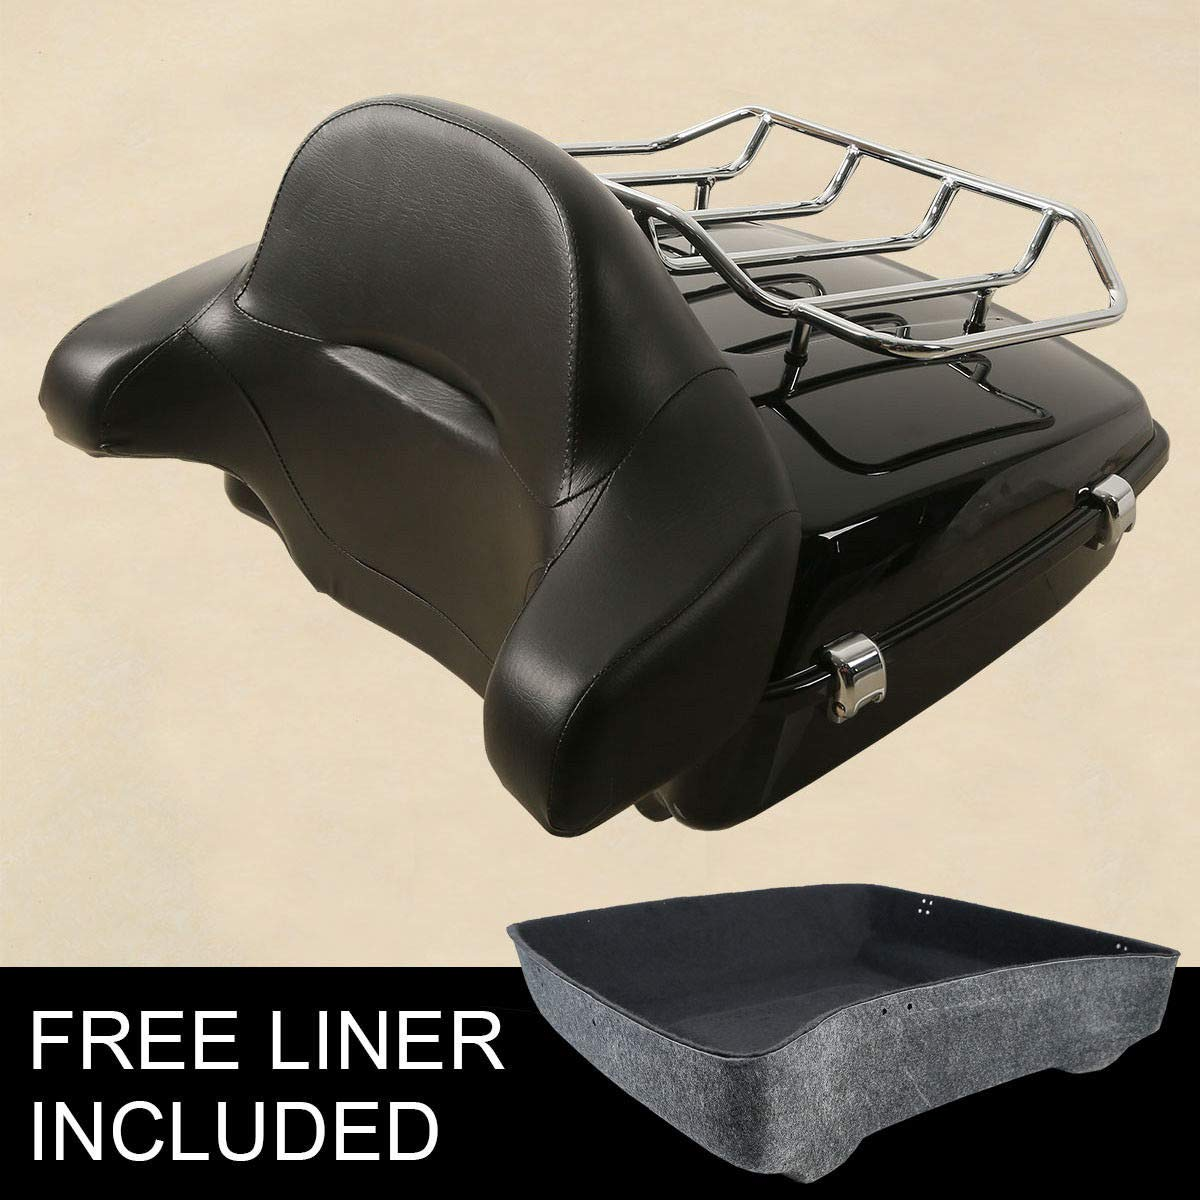 XFMT 10.7'' Chopped Tour Pak Trunk Luggage Rack +Tour-Pak Backrest Pad - Road Zeppelin Styling+ Compatible with Harley Touring FLHR FLHX 2014-2018